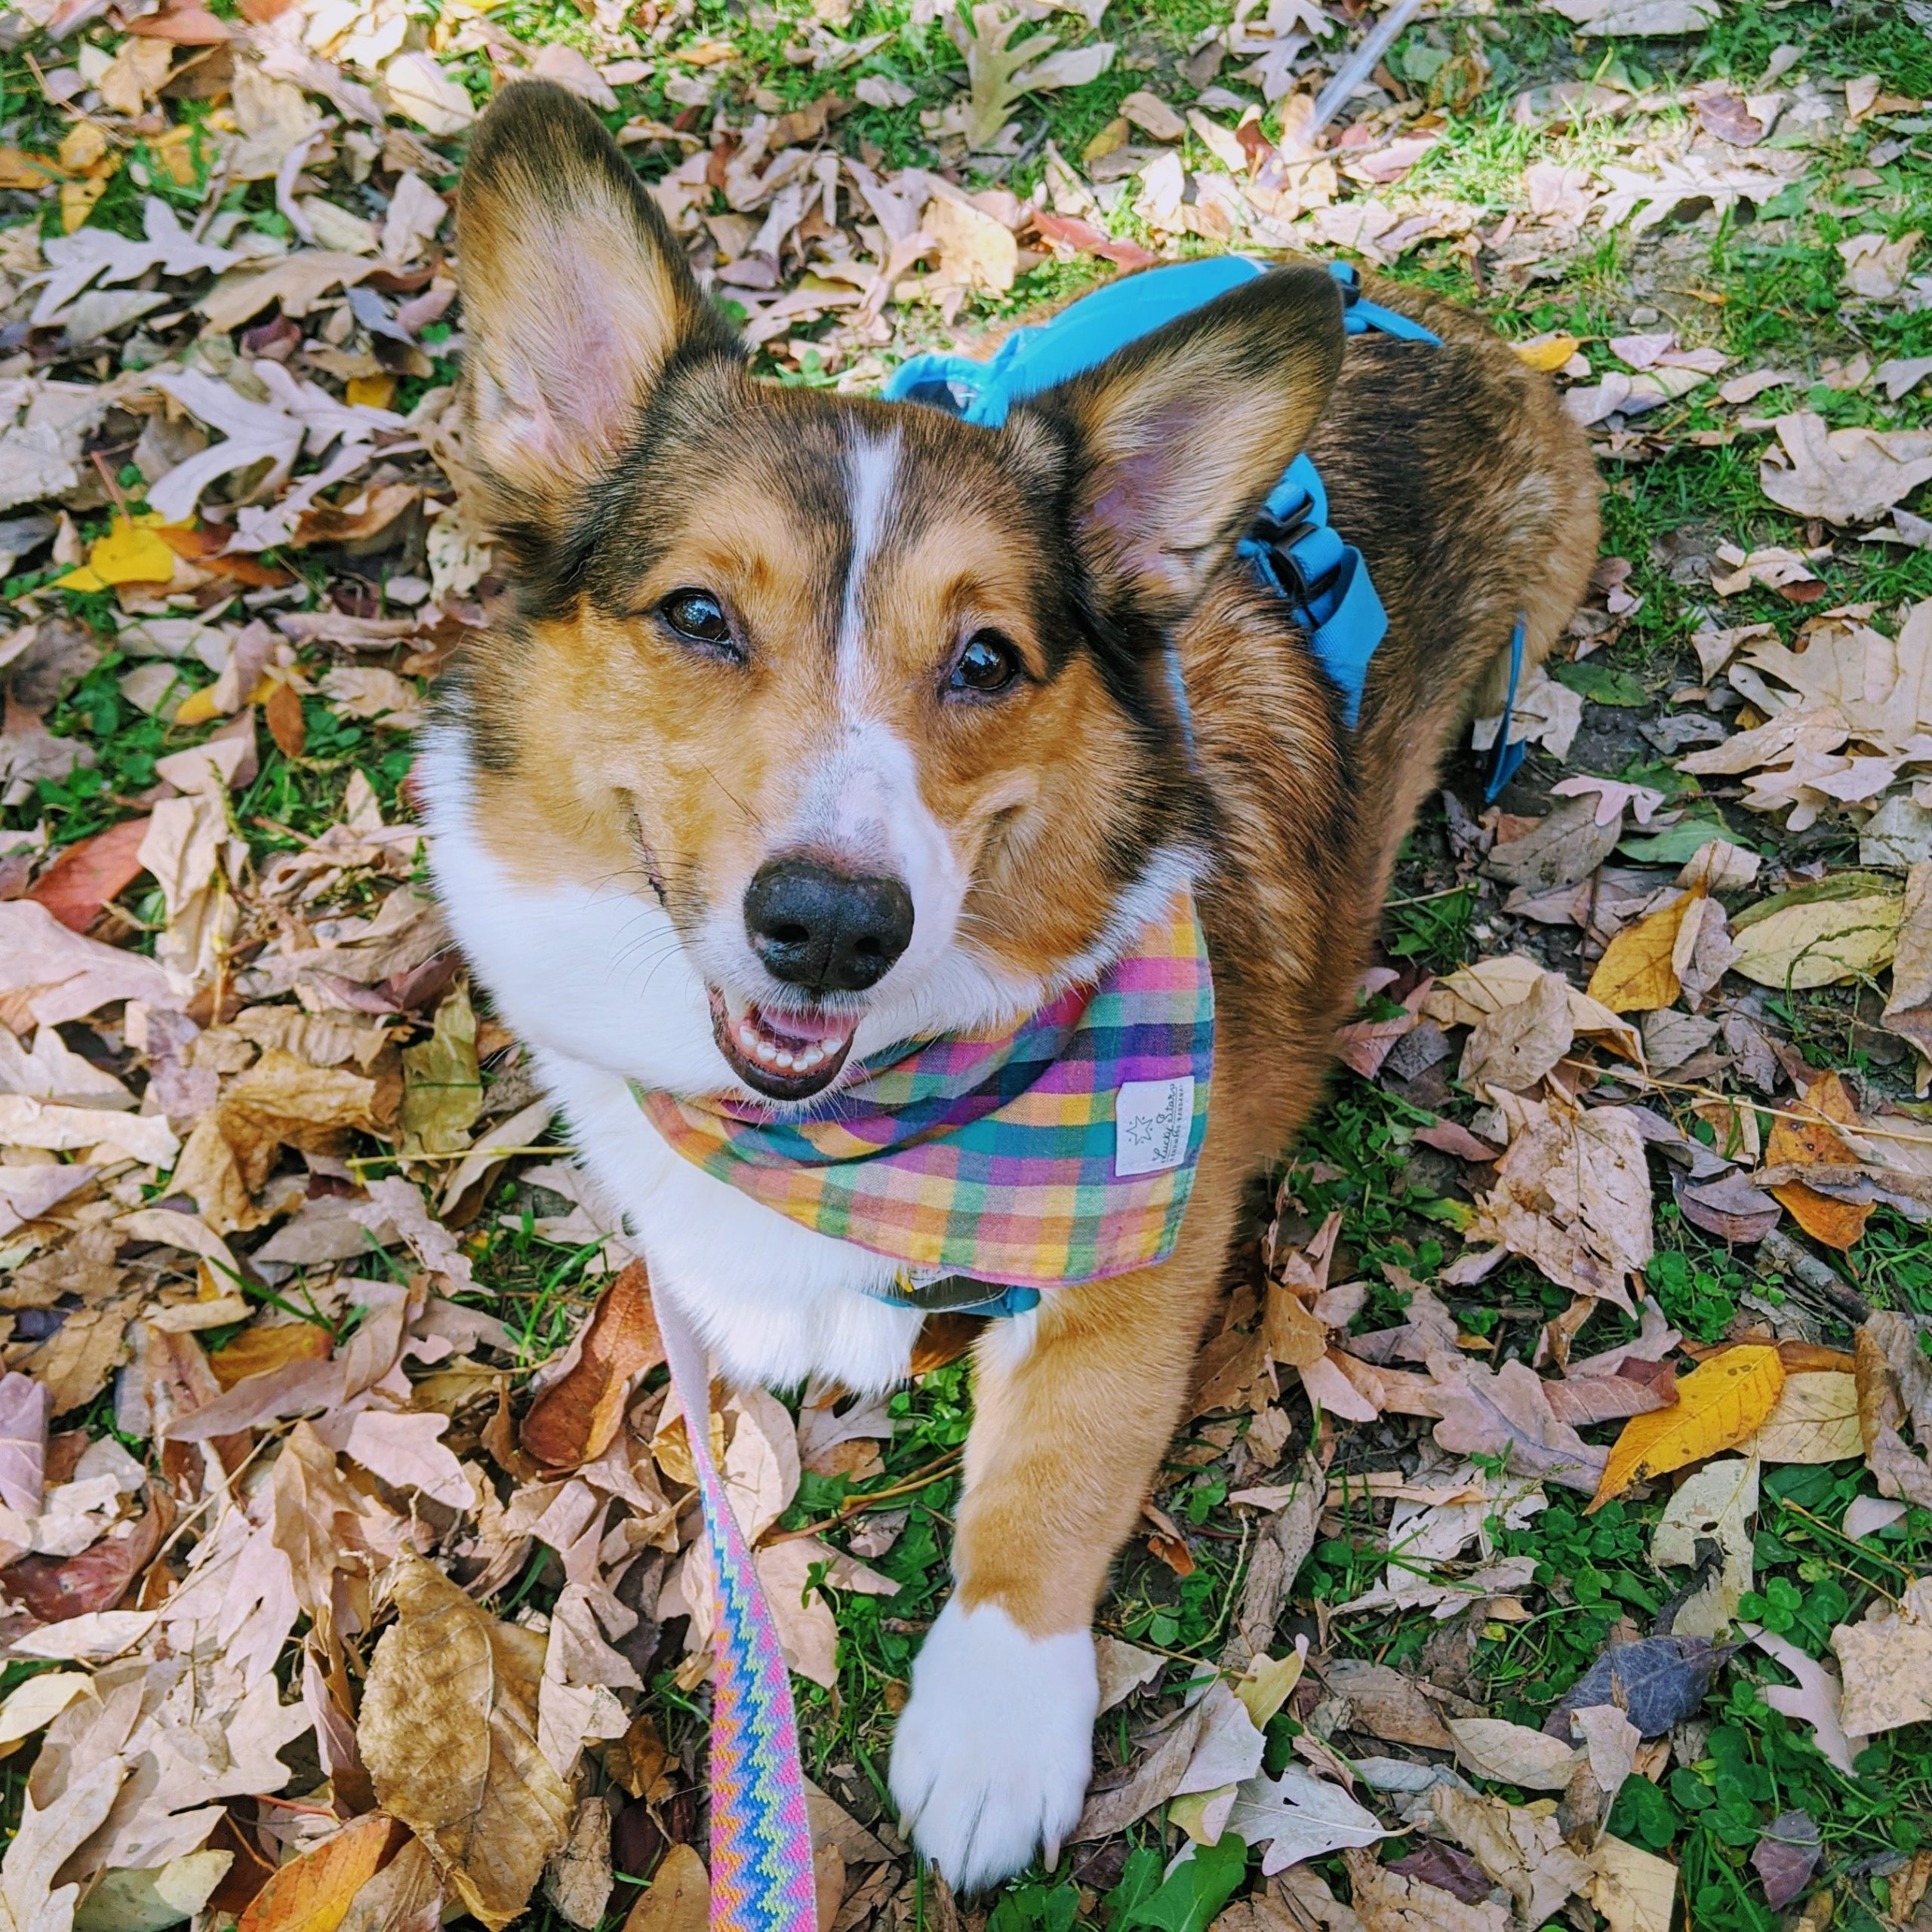 Charles, a three-legged tripawd corgi wearing a blue harness and a rainbow plaid bandana, laying on the ground upon some fall leaves, smiling